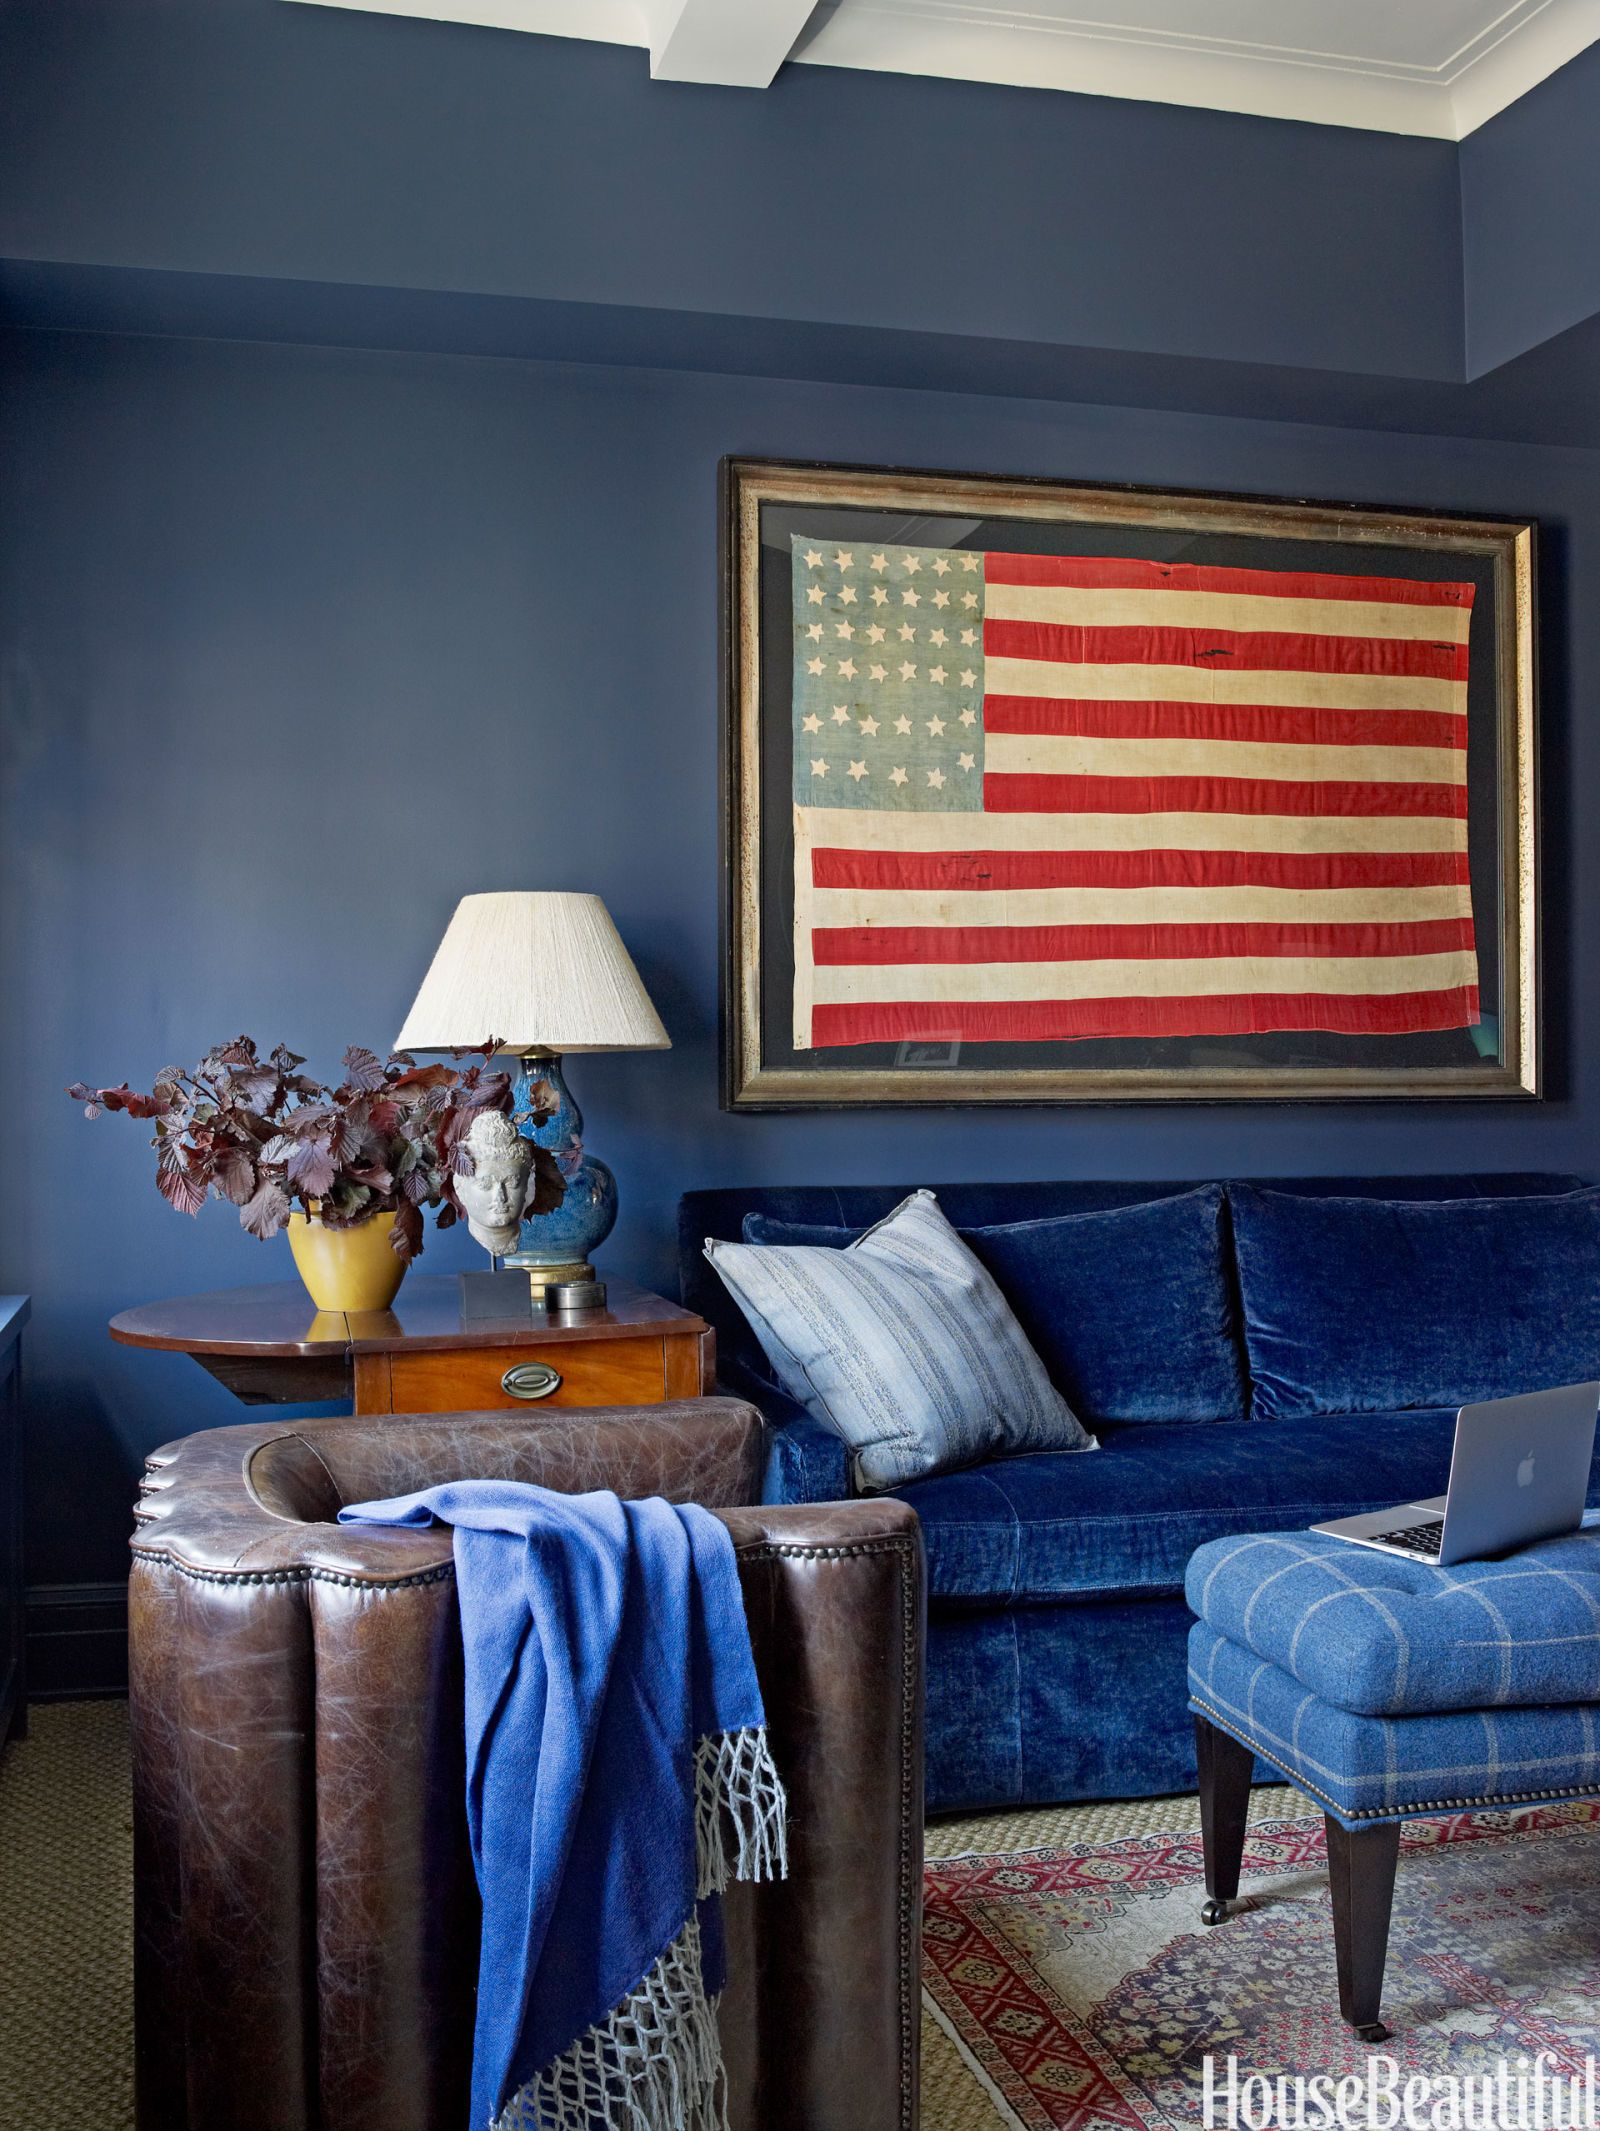 civil war era flag & Patriotic Decor for 4th of July - Red White and Blue Decorating Ideas